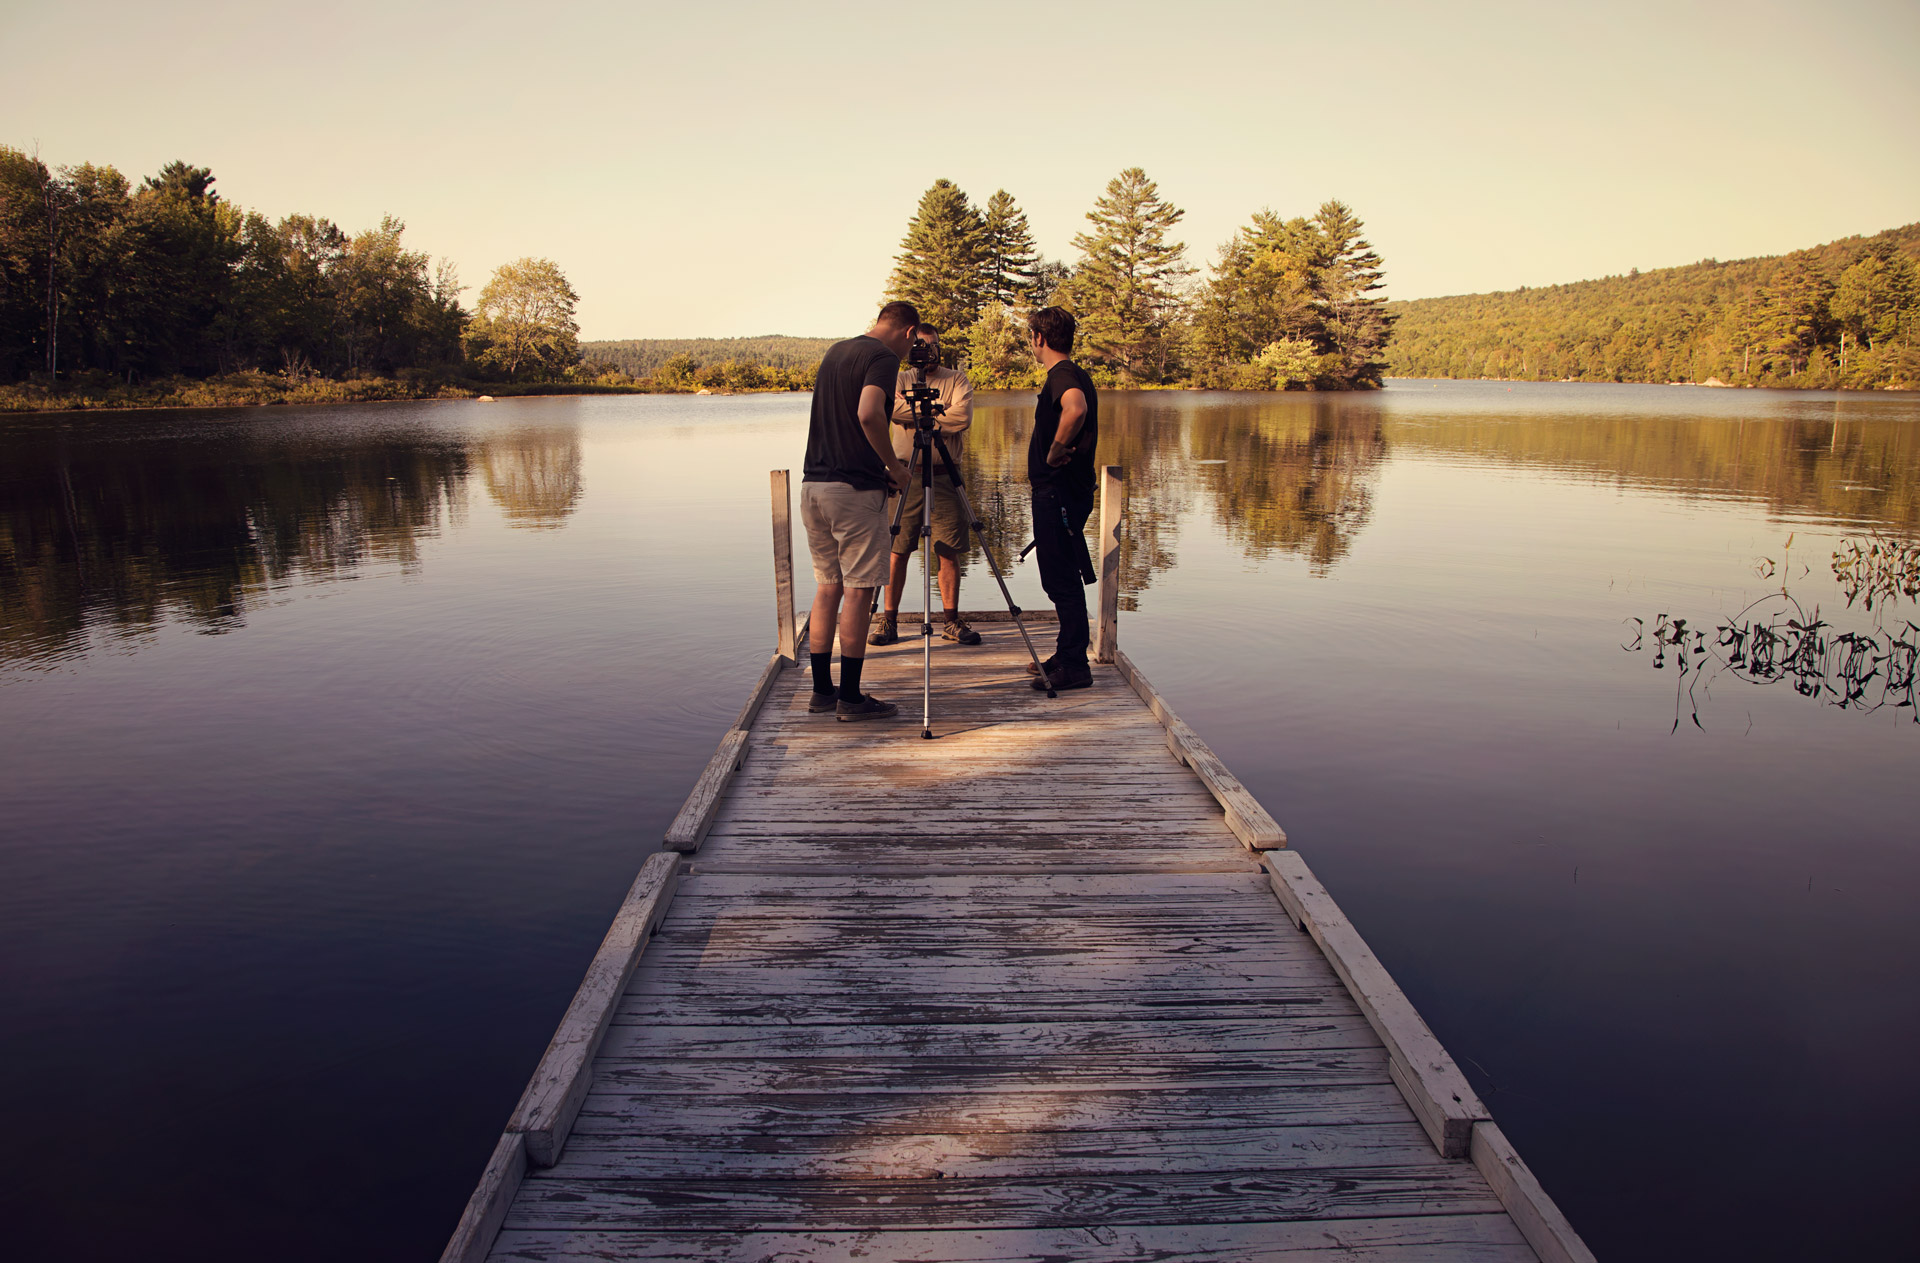 guys-standing-on-dock-filming-on-a-lake-maine-parisleaf.jpg